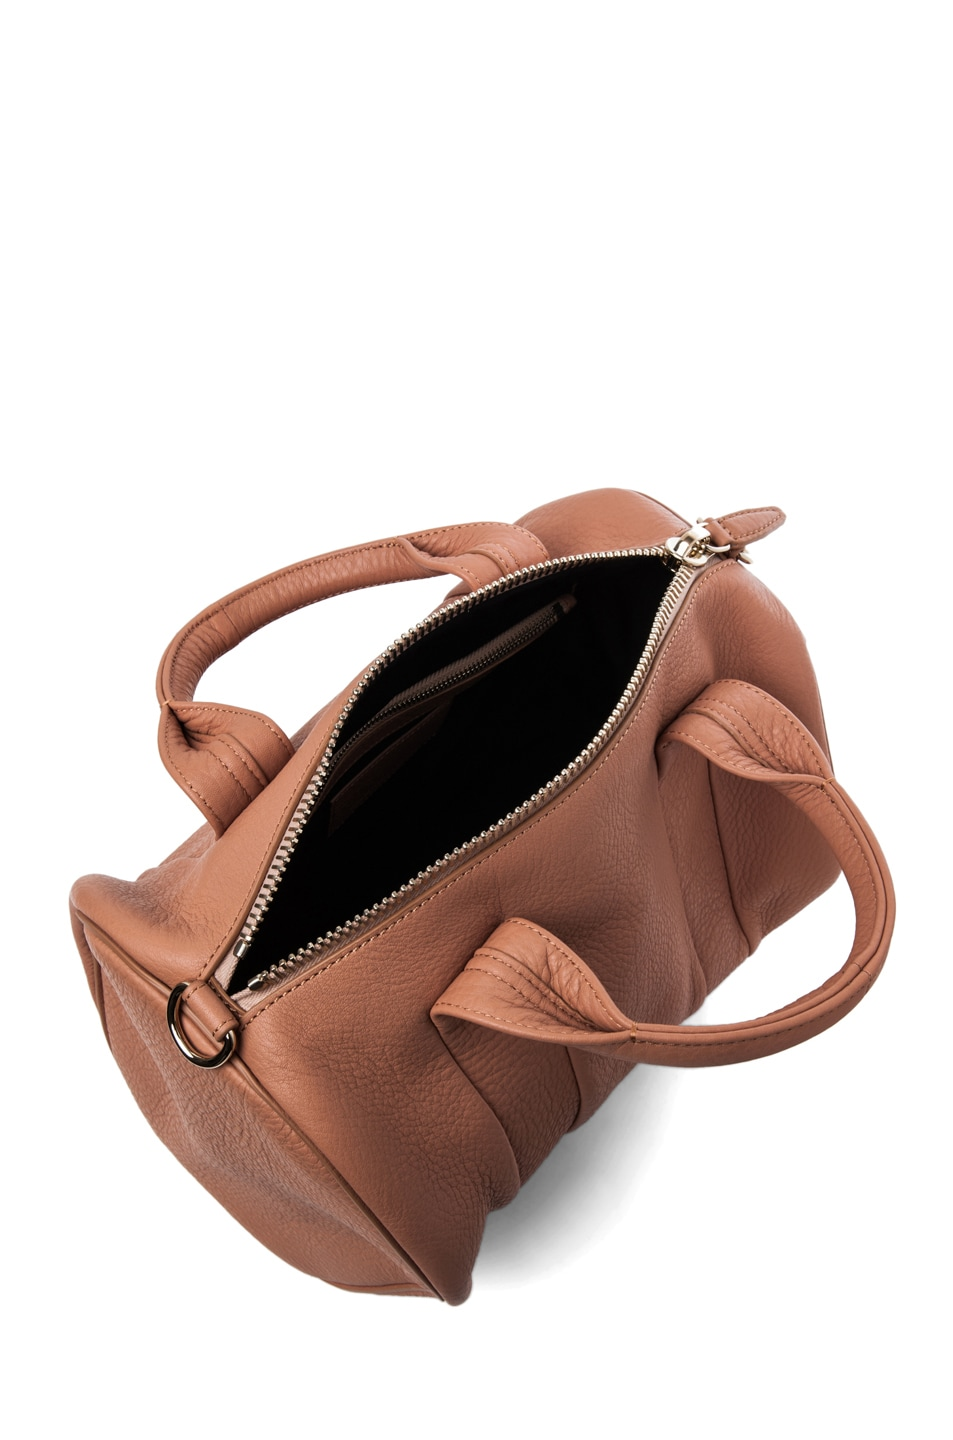 Image 5 of Alexander Wang Rocco Soft Pebble Leather Bag in Tan